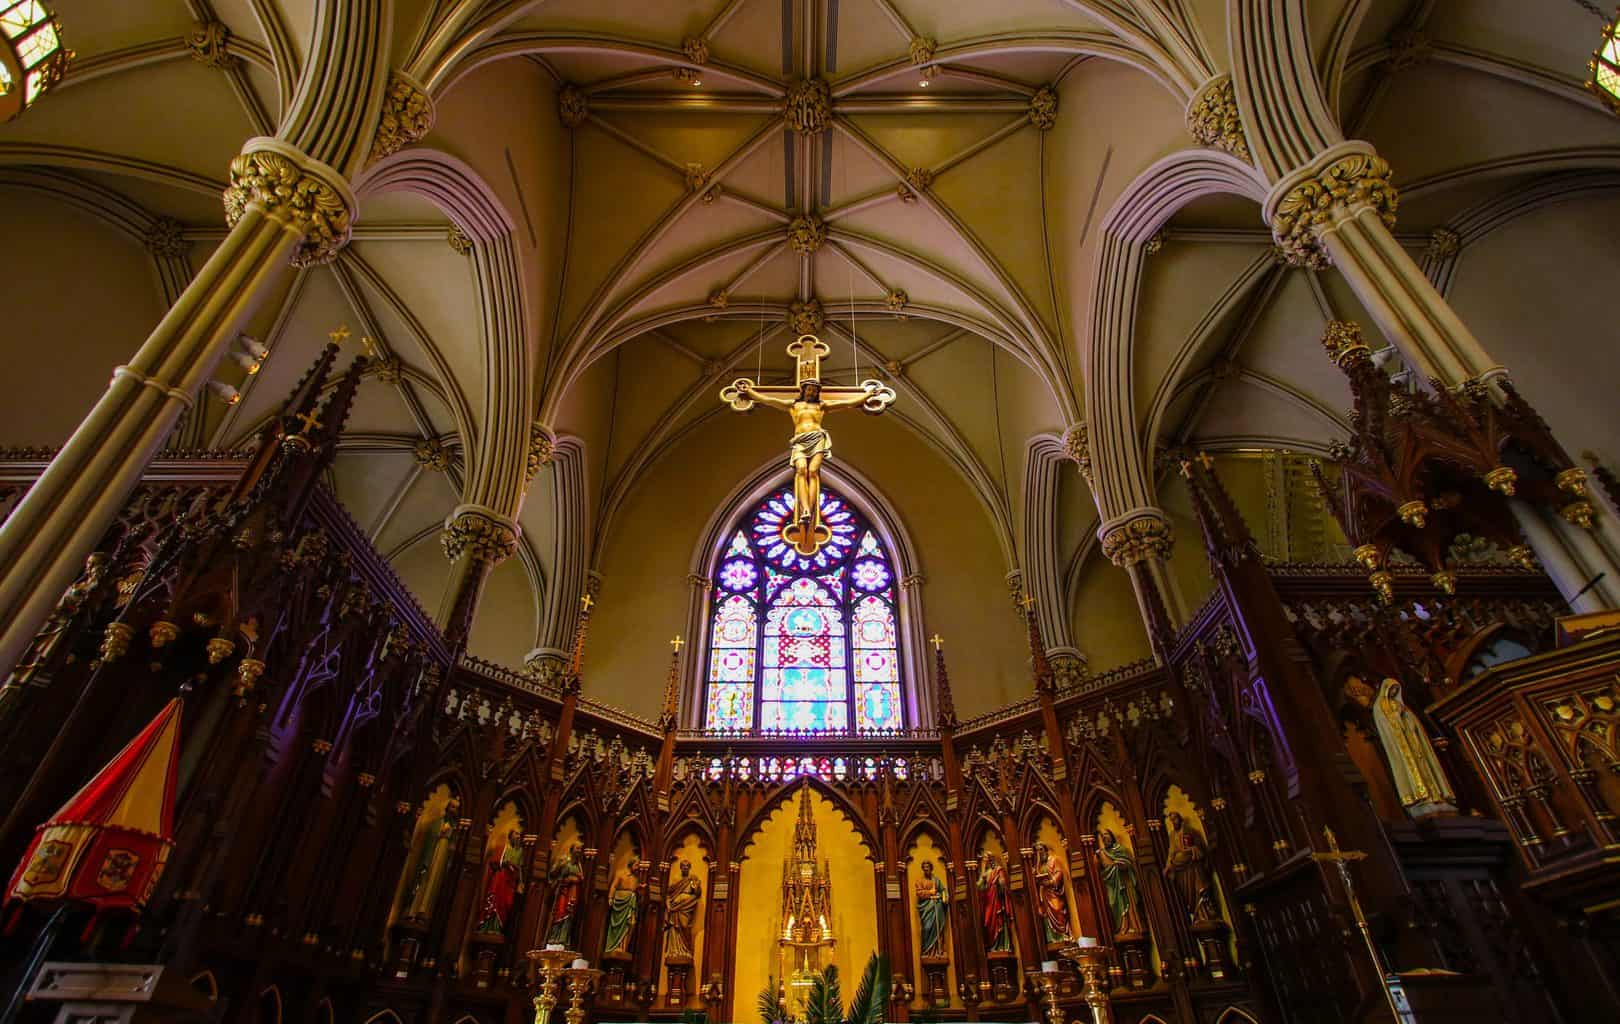 The charming, Gothic-Revival style interior of the Old St. Patrick Cathedral in New York City (image sourced from Flickr.com).